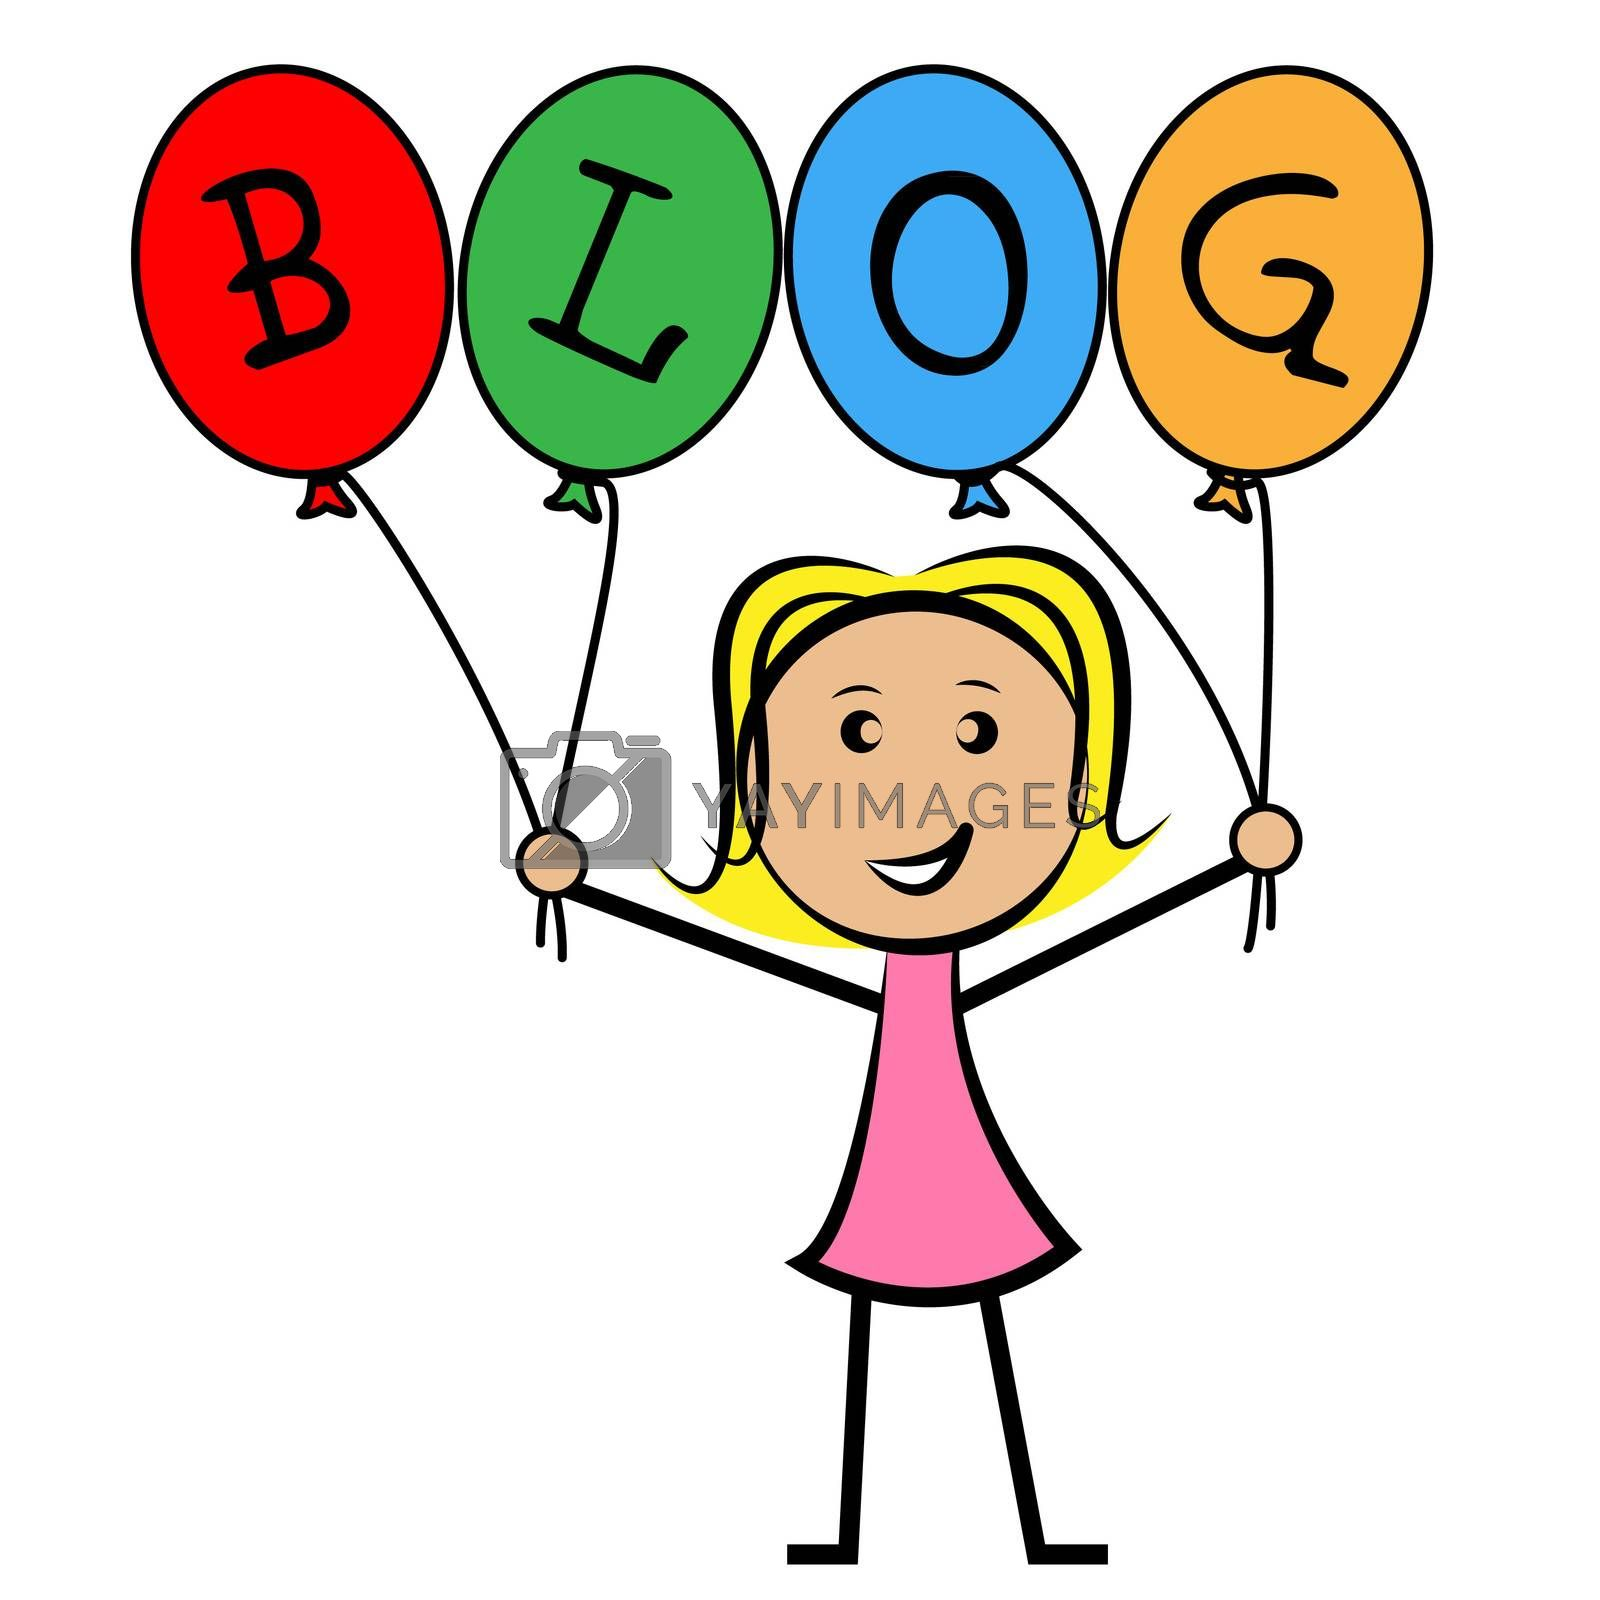 Blog Balloons Indicates Young Woman And Kids by stuartmiles